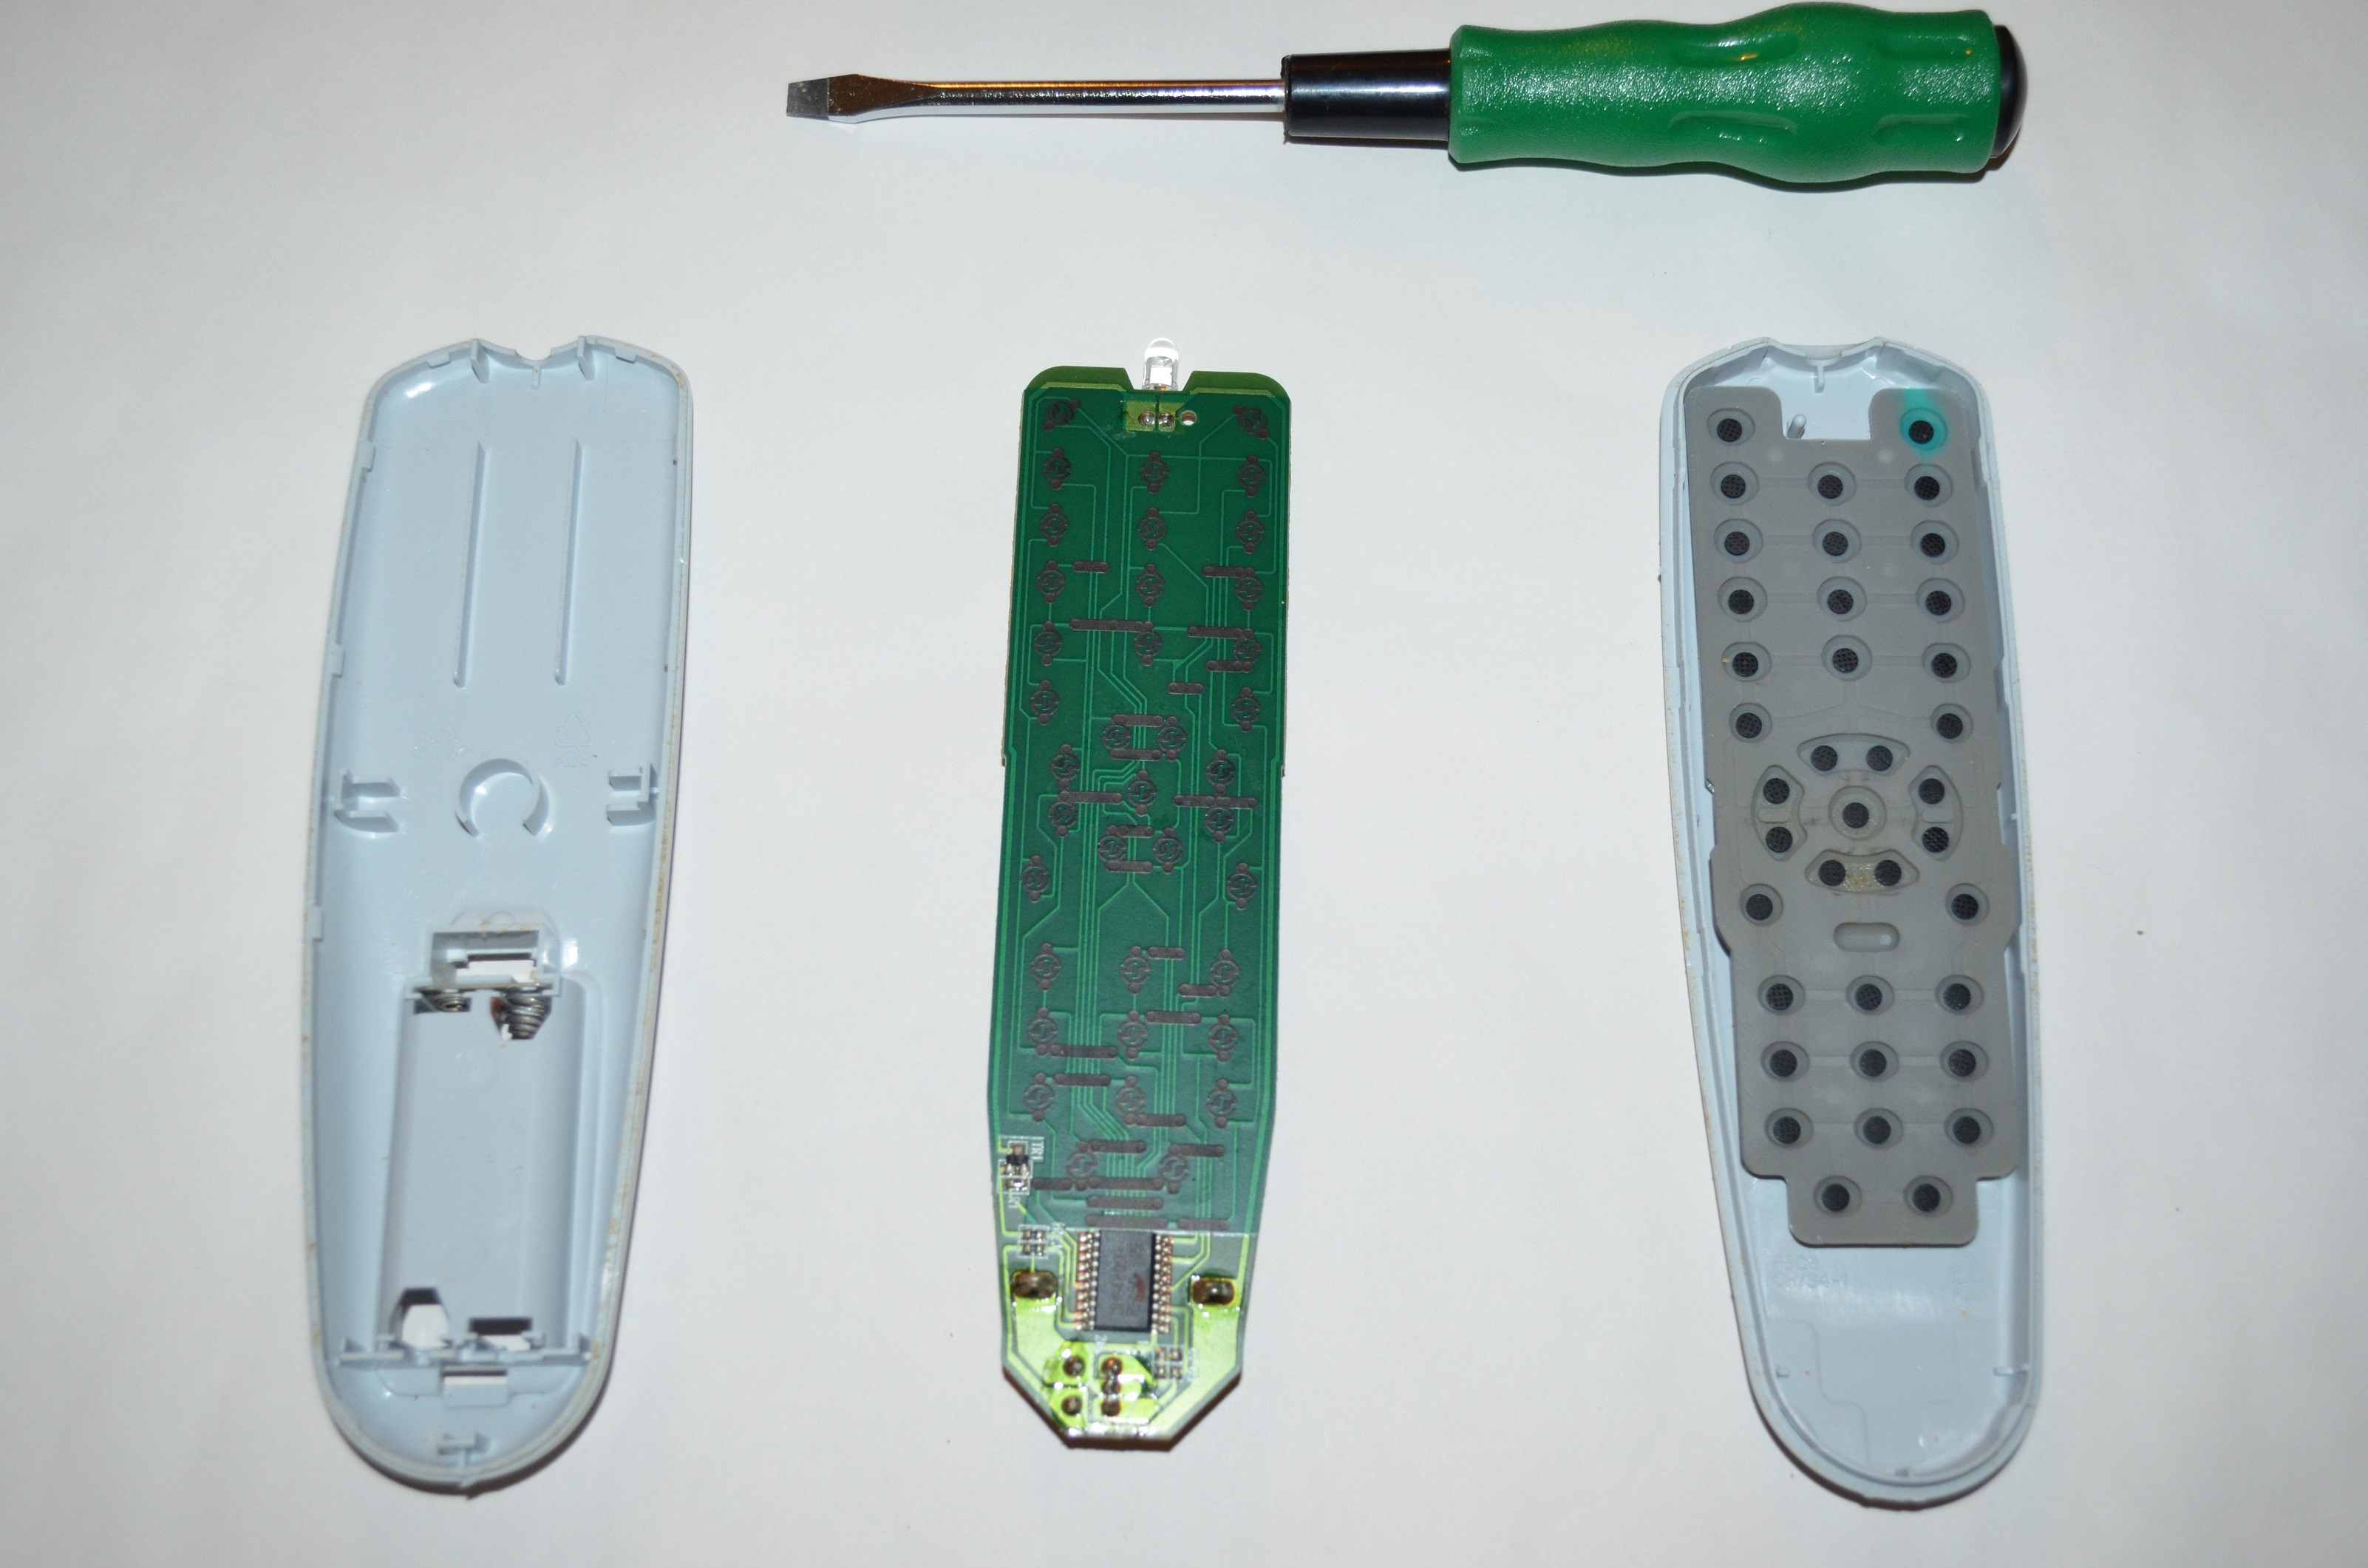 Infrared Remote Controls Inside How Remote Controls Work